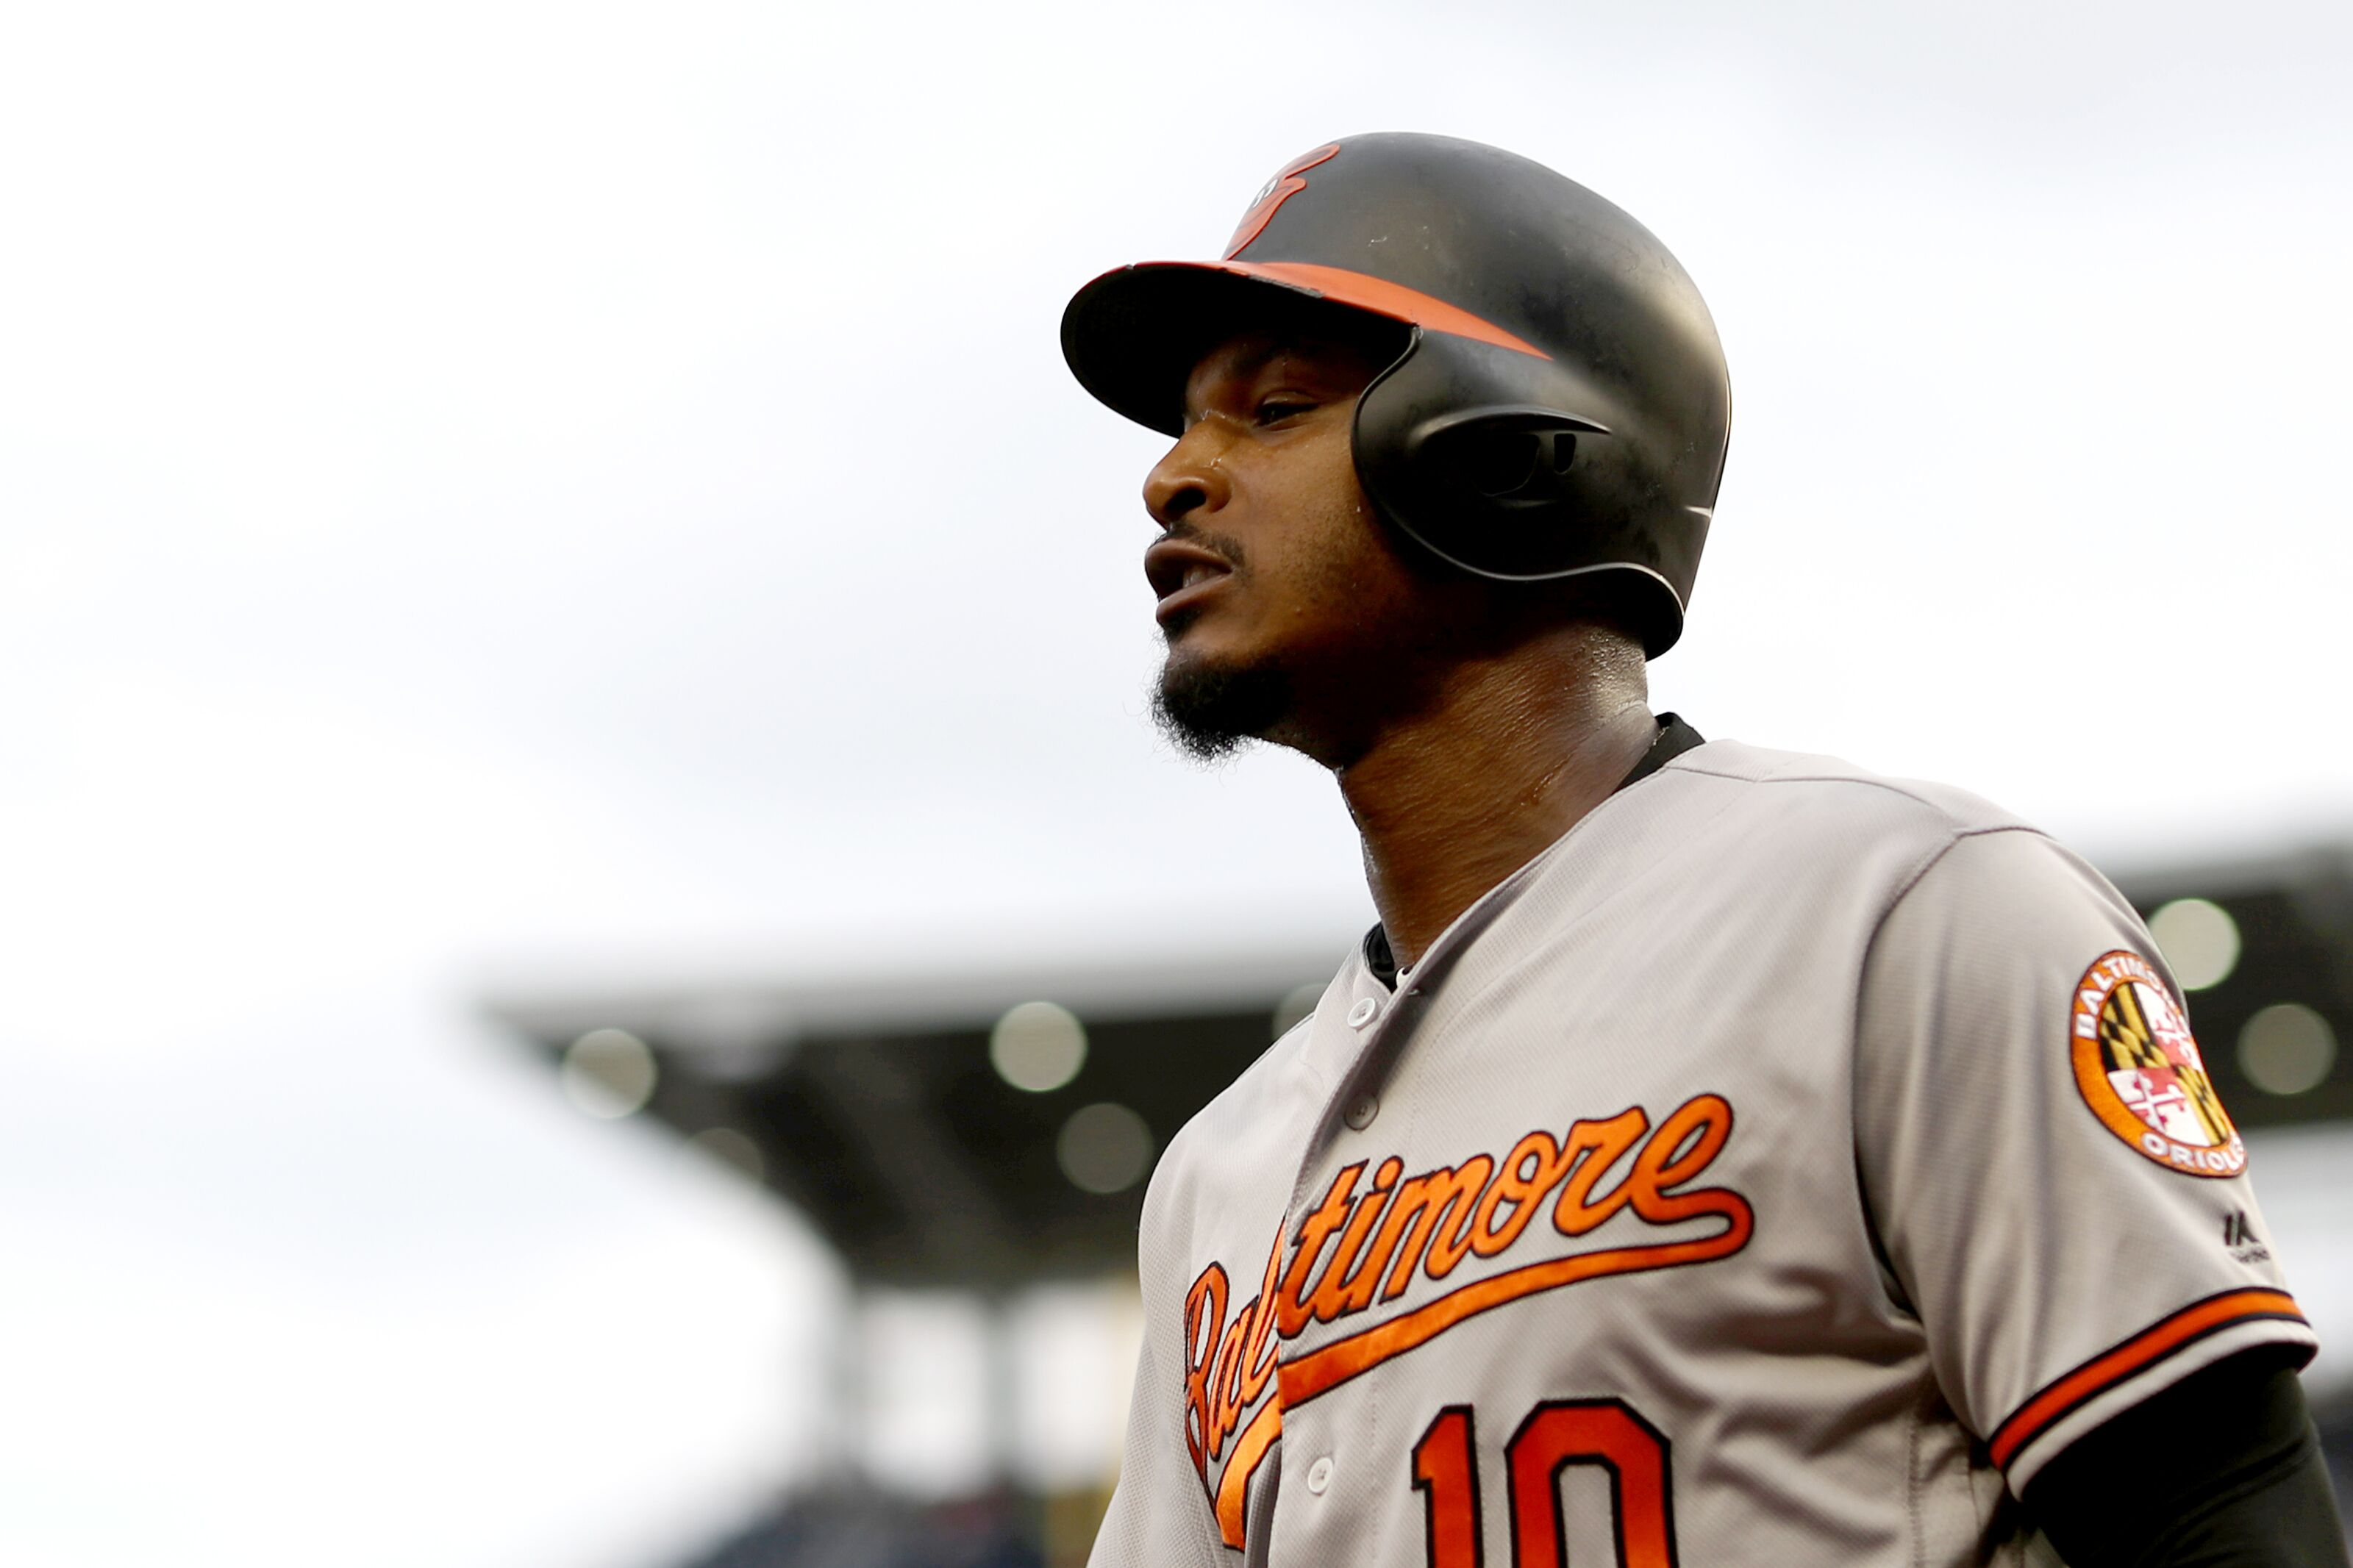 Baltimore Orioles Rumors: Phillies Look to Add Longtime Orioles Star